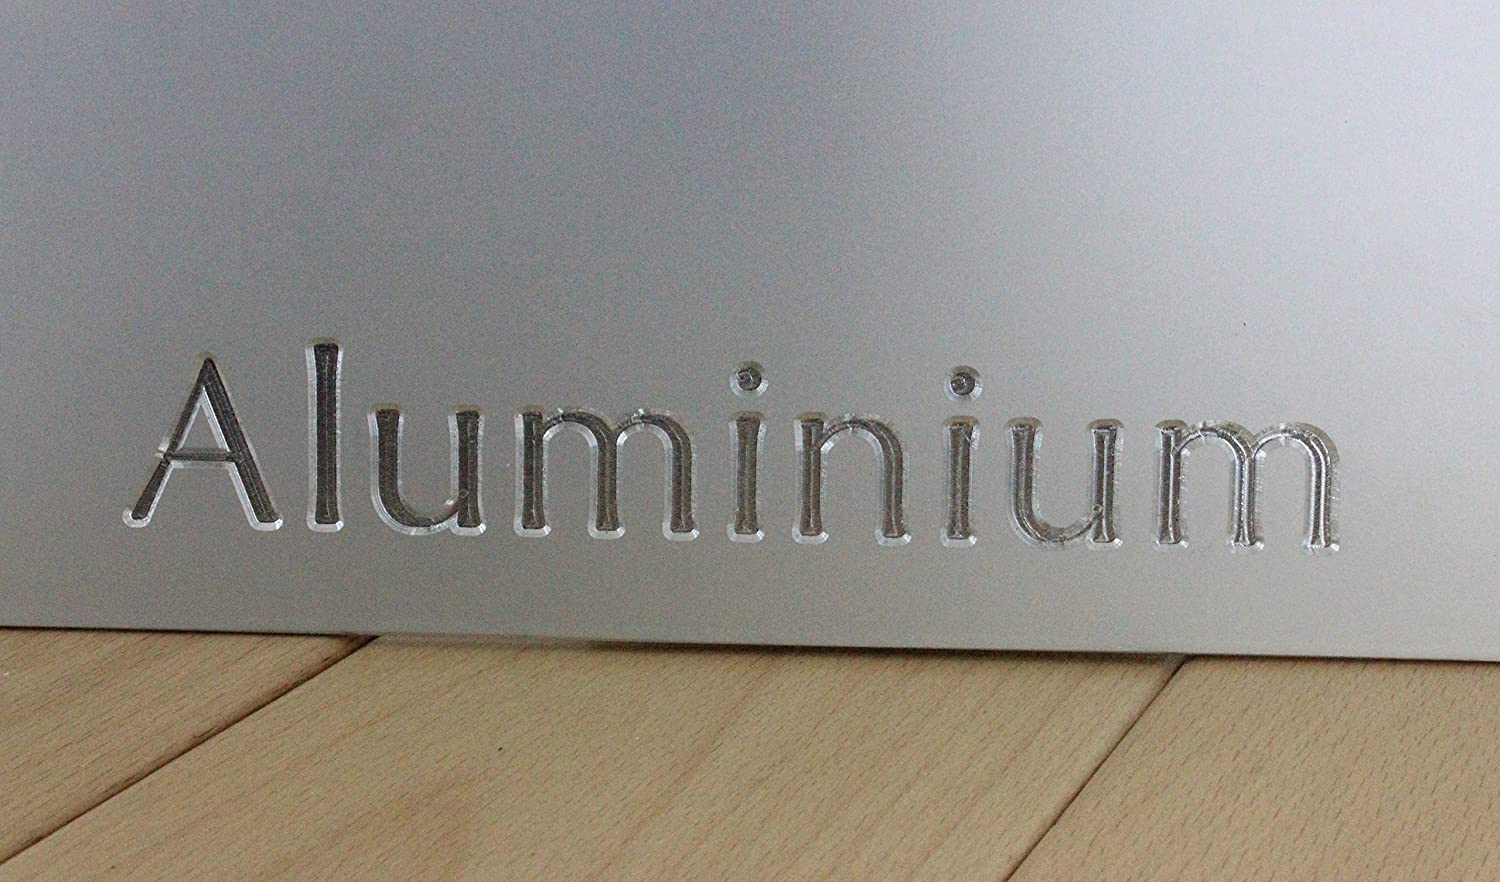 2.0mm Thick Aluminium Sheet Plate - 23 sizes to choose from (400mm x 300mm) SGS